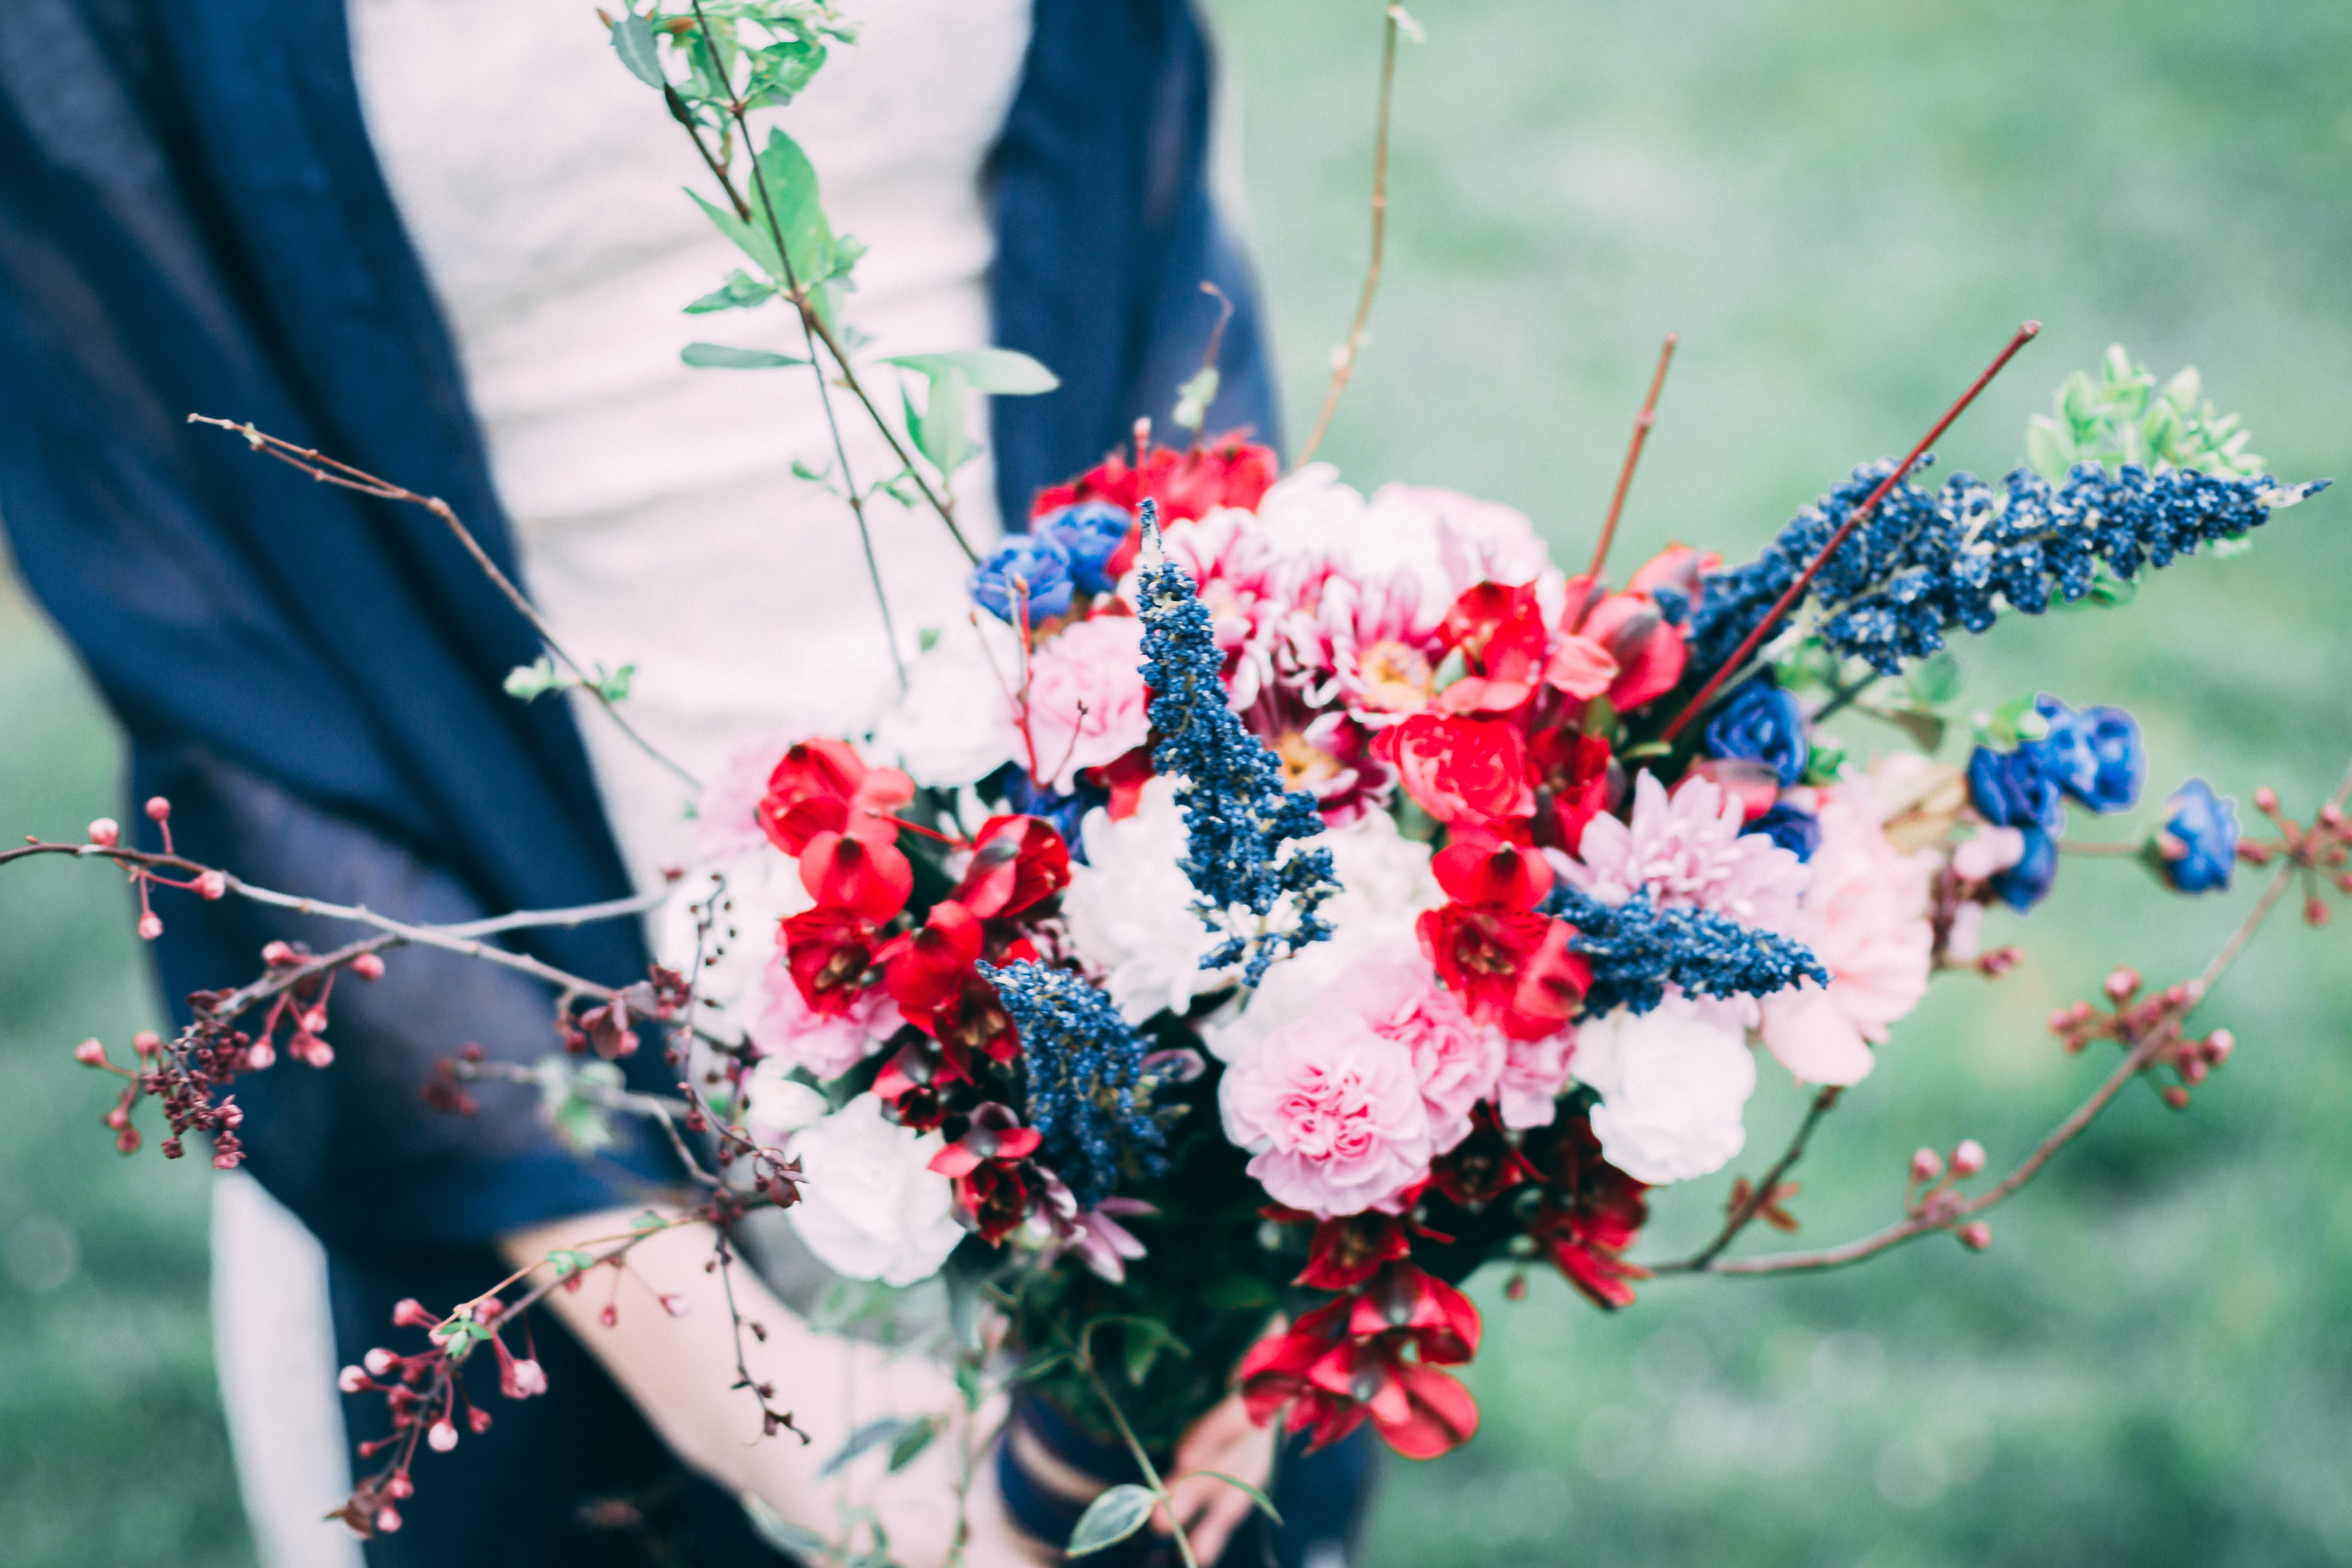 person holding bouquet of pink, red, and blue petaled flowers